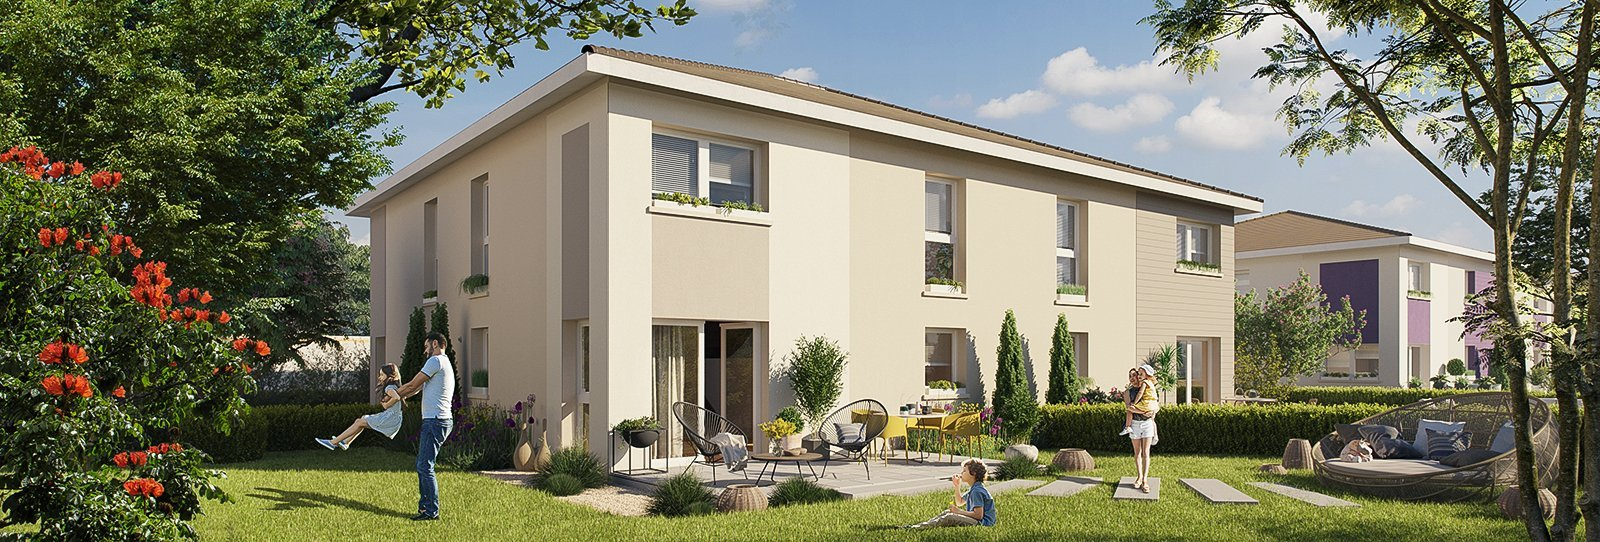 Maisons, appartements neufs Cernay - Les Carres Ciconia